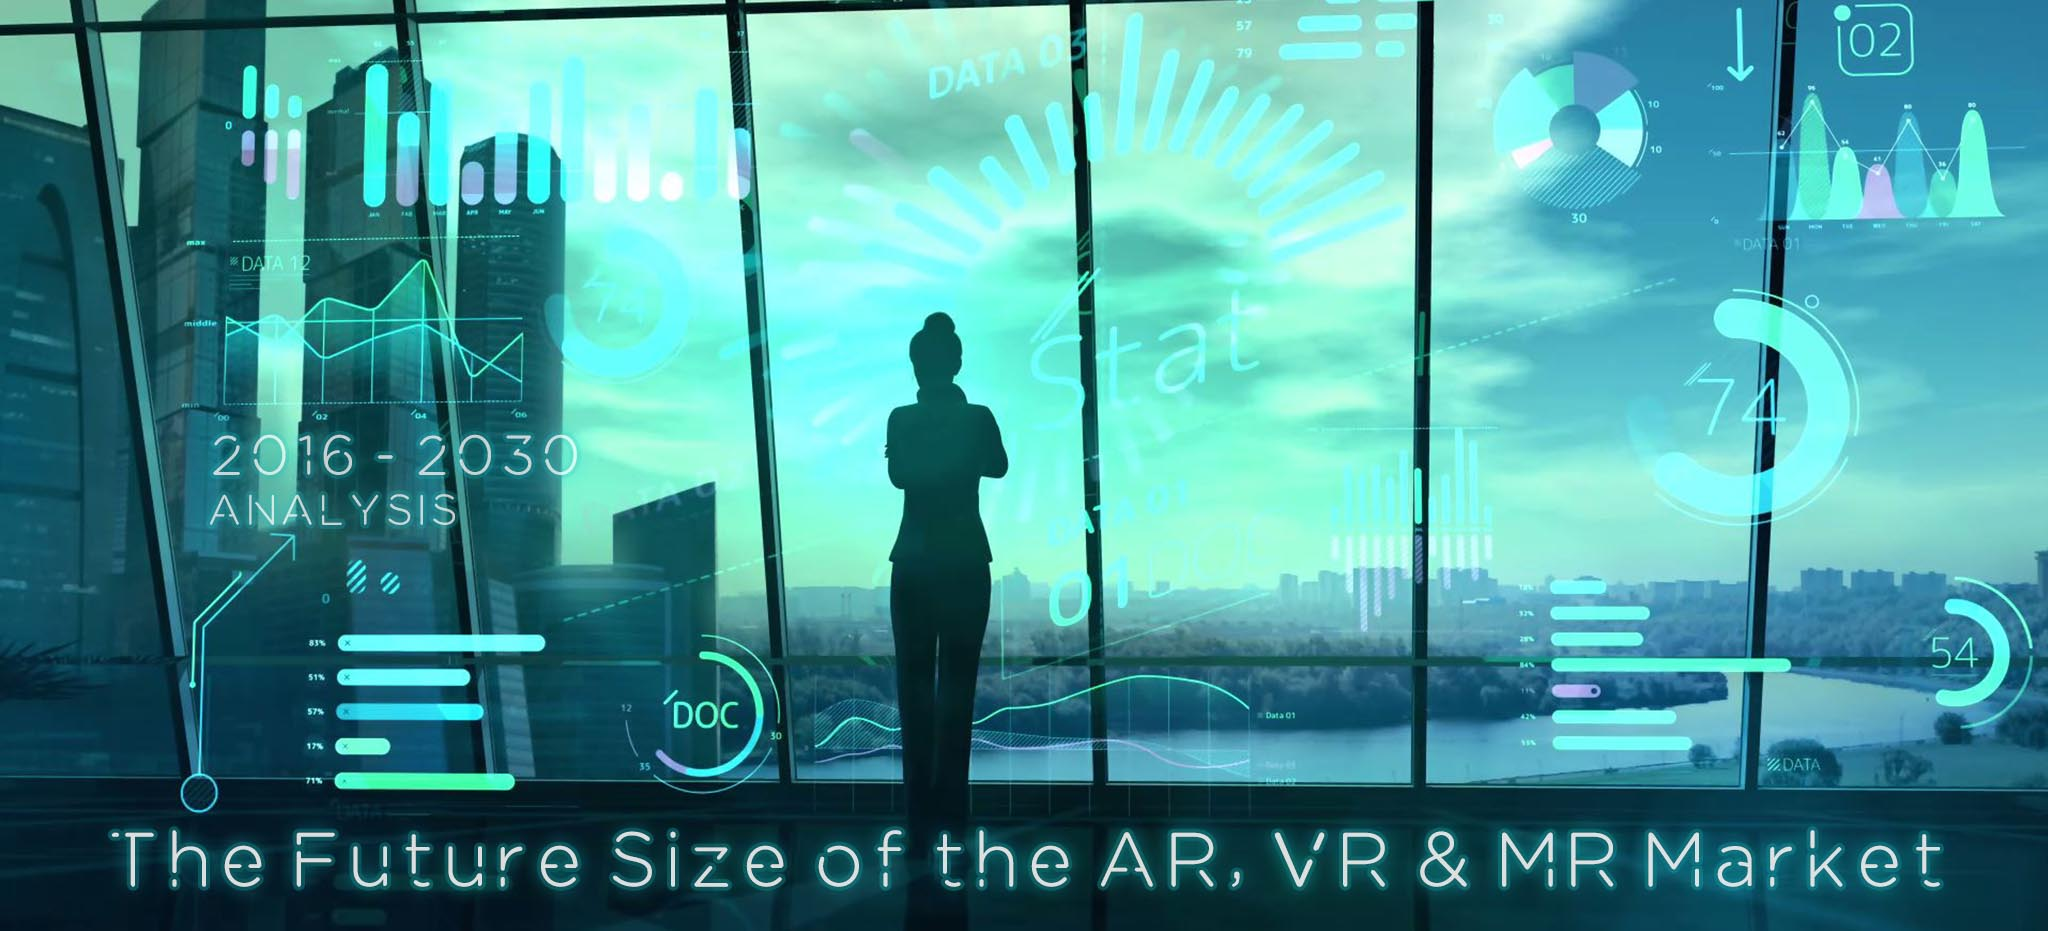 AR VR MR Markets Insight